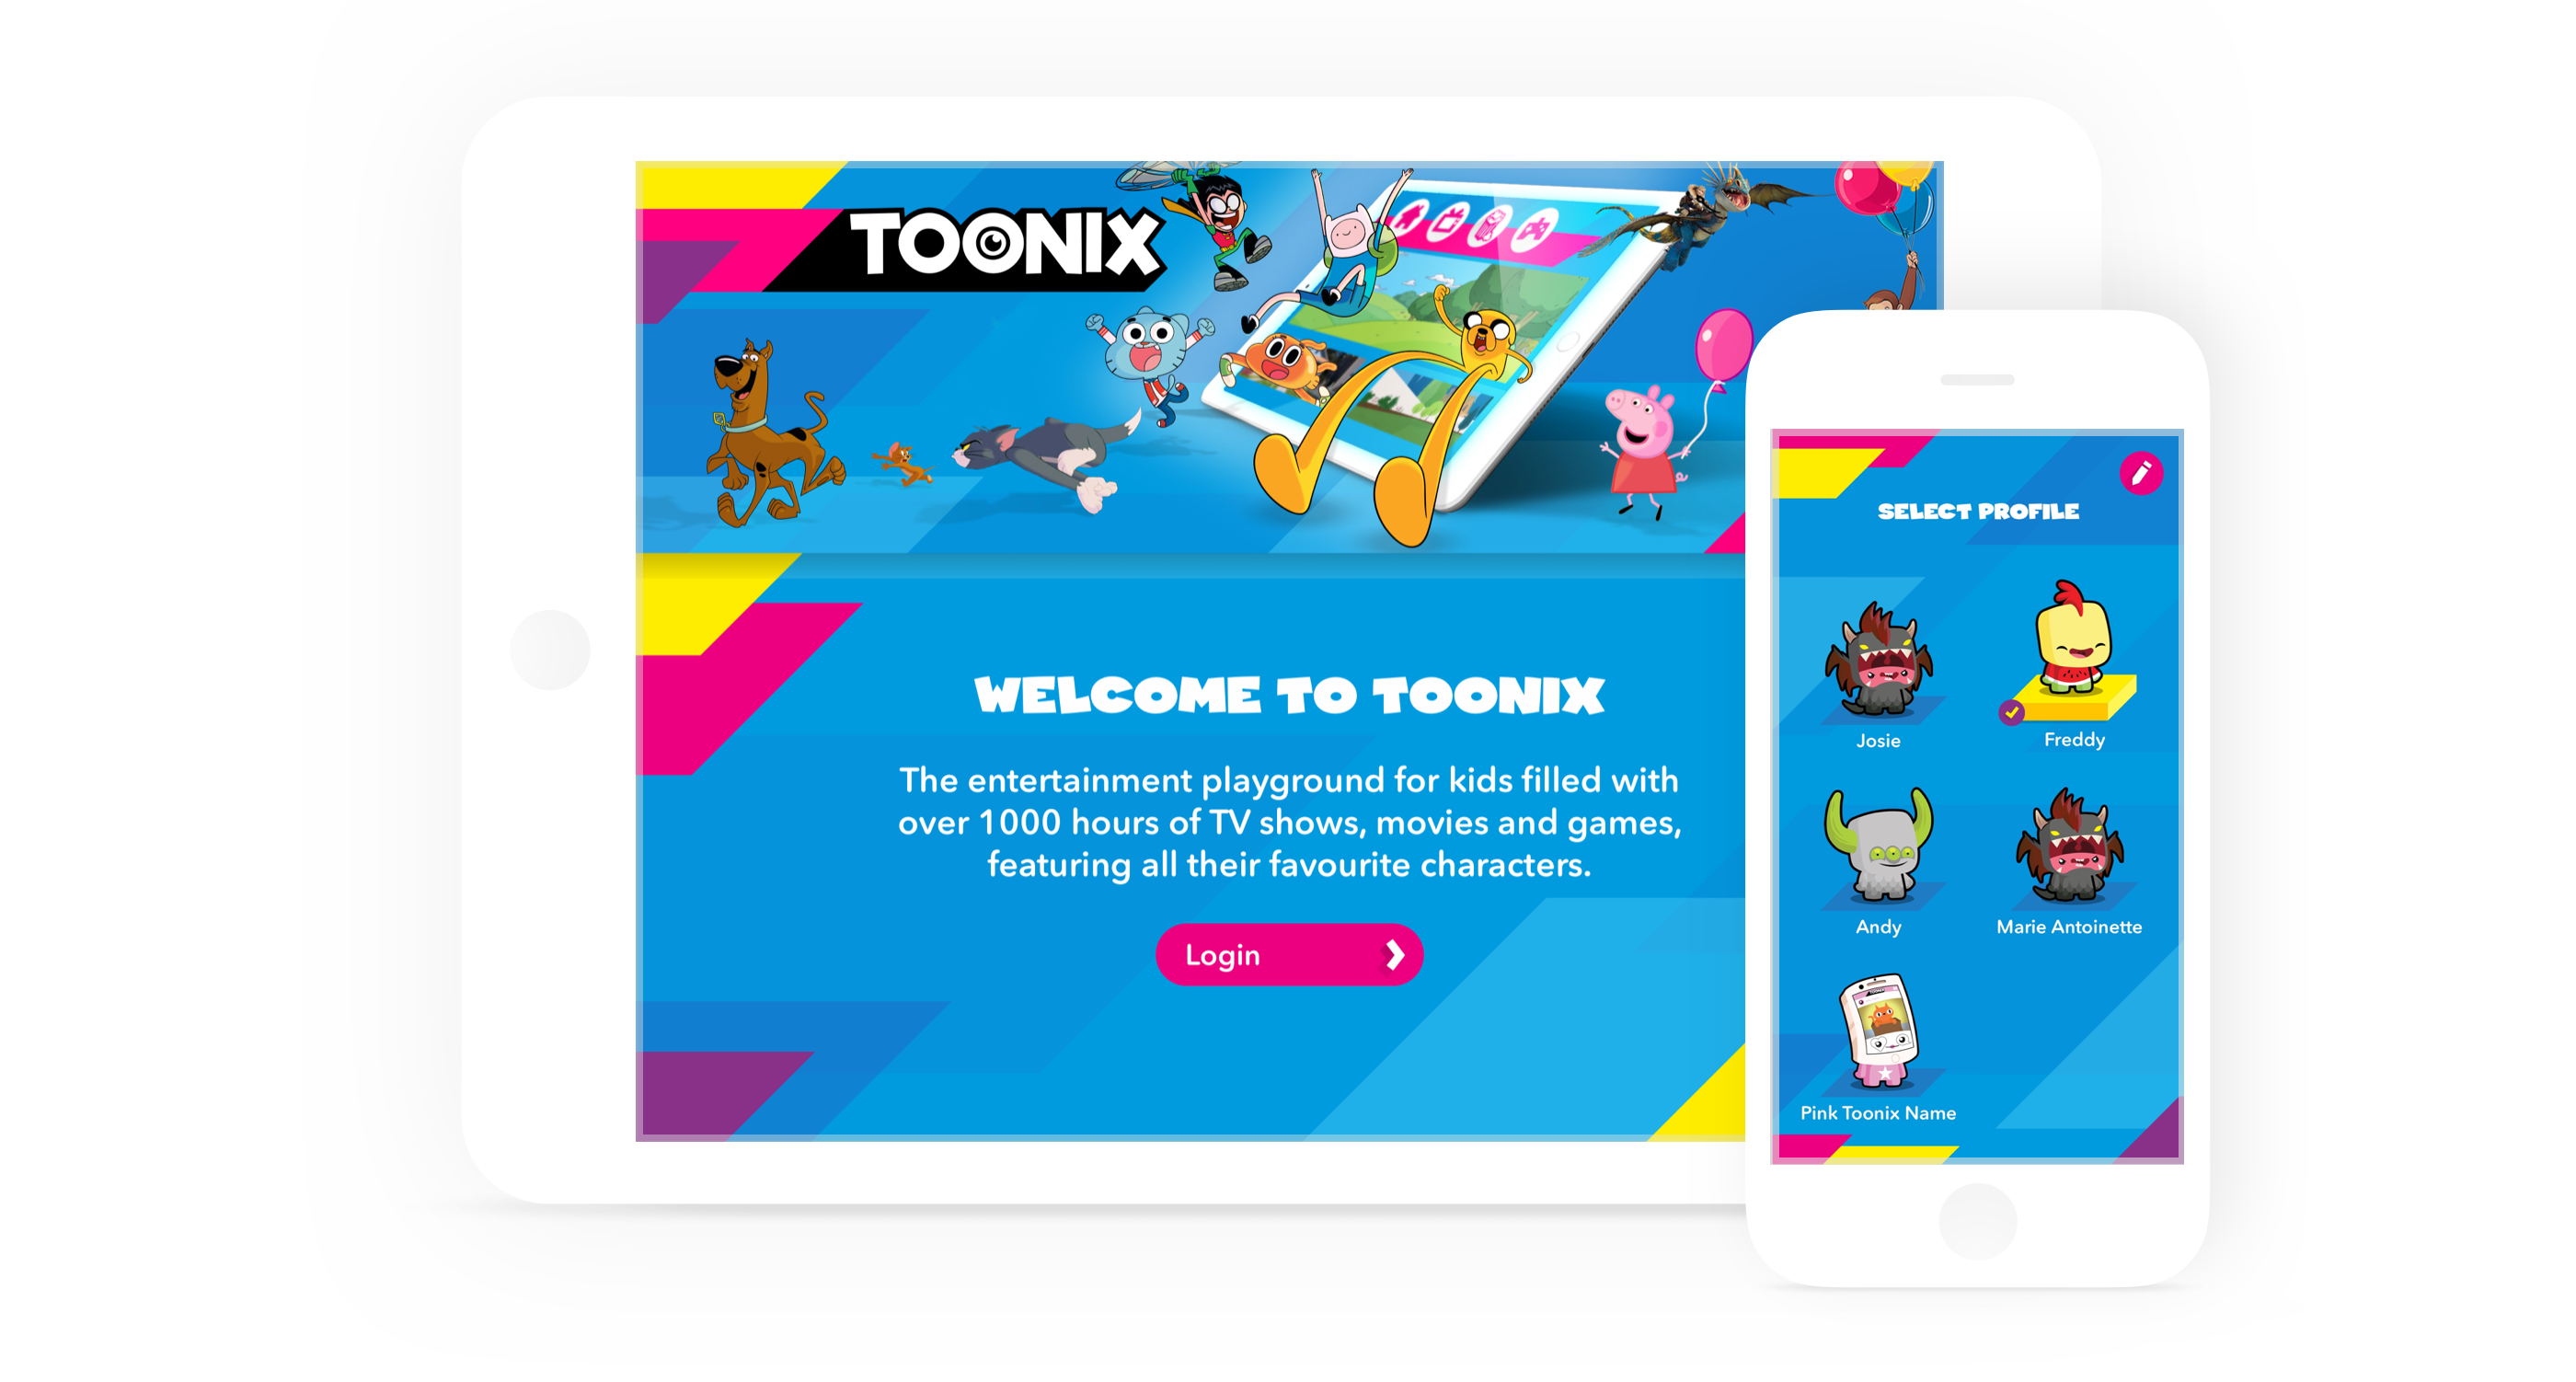 iPad and iPhone with Toonix welcome screen